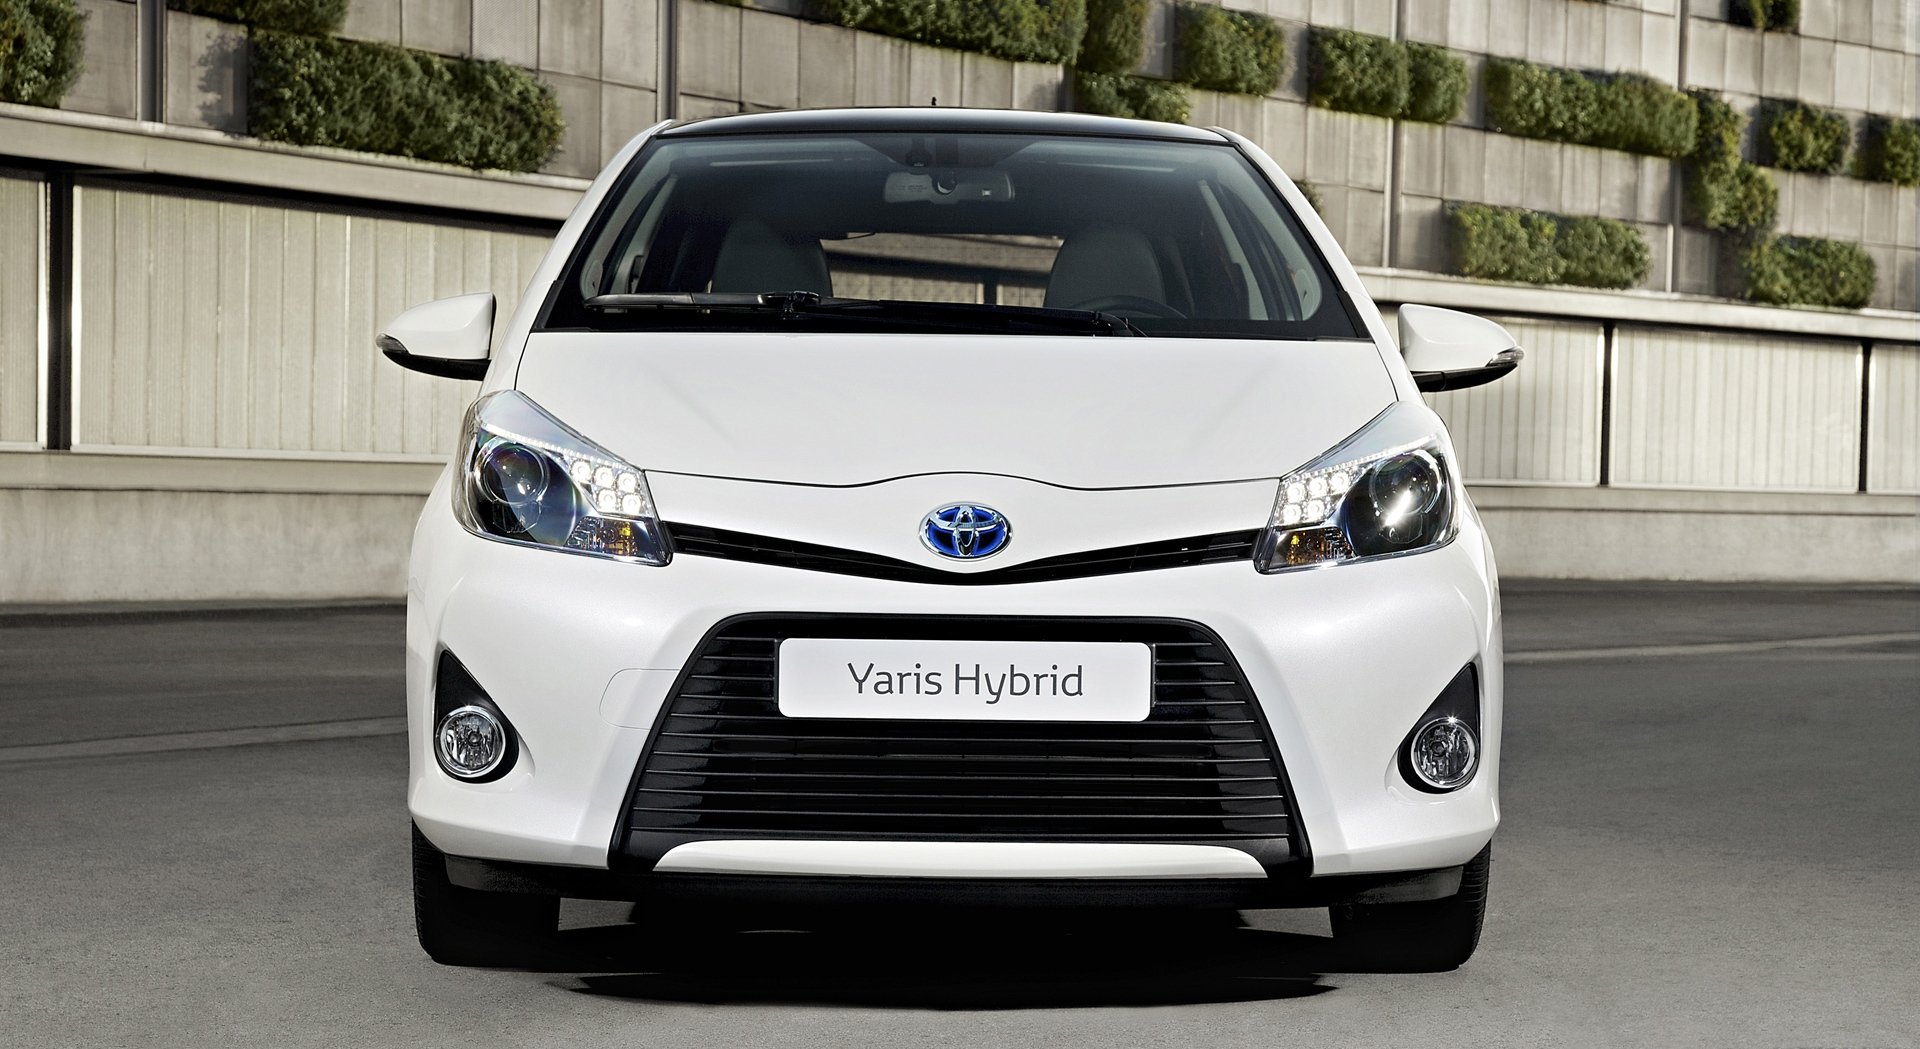 toyota yaris hybrid front hd desktop wallpapers 4k hd. Black Bedroom Furniture Sets. Home Design Ideas